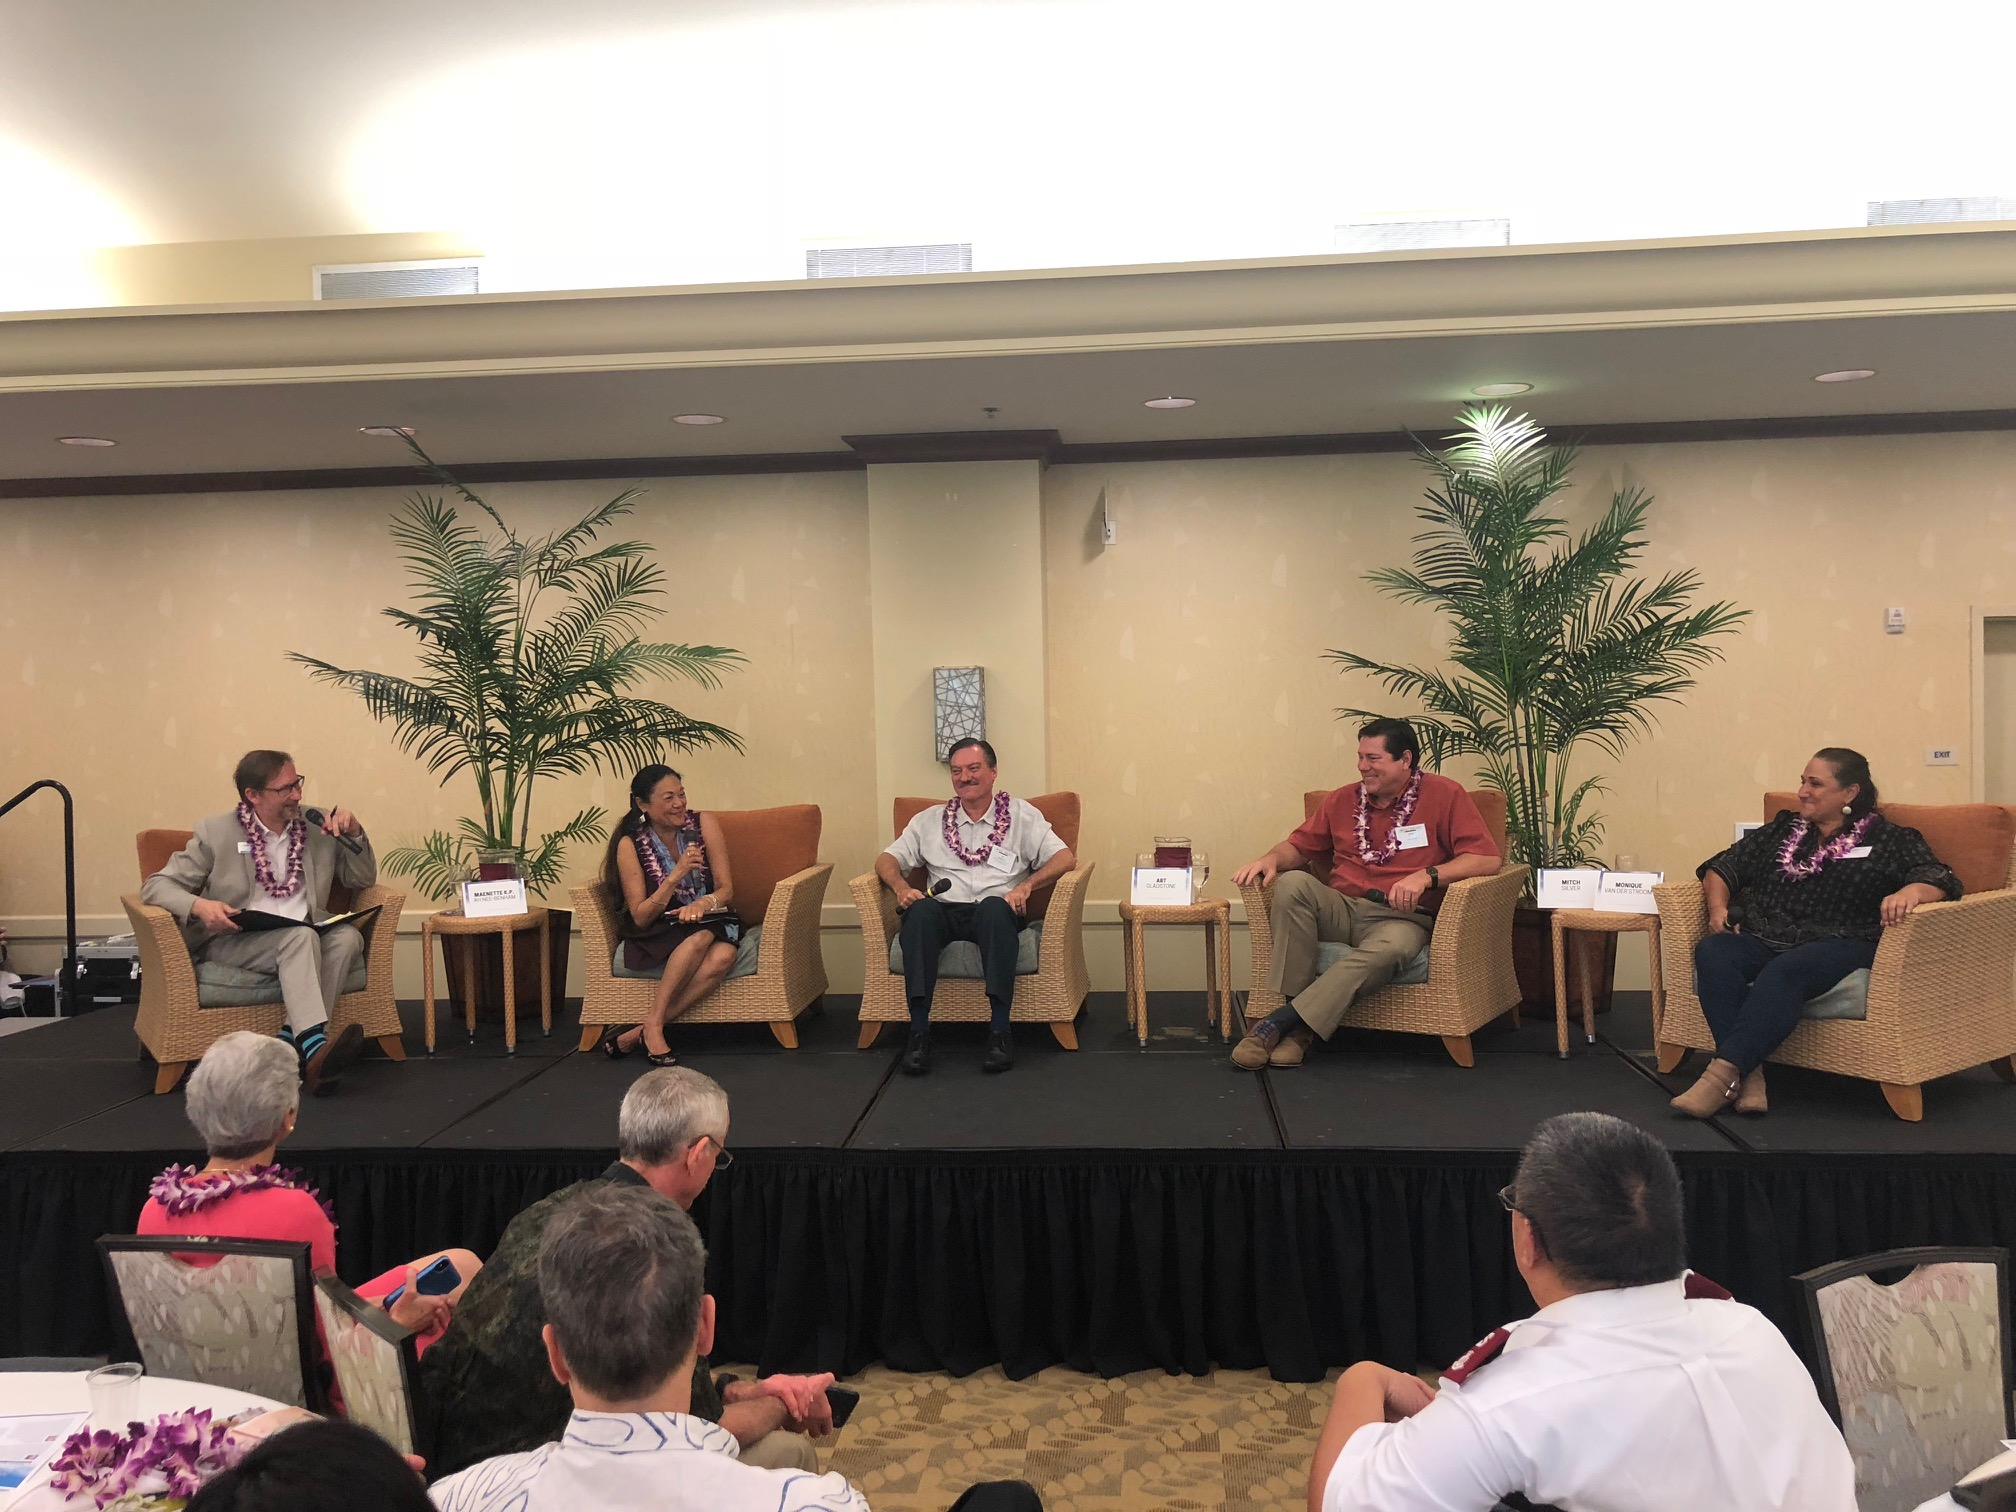 """The """"West Oʻahu Means Business"""" panel, with (from left) moderator A. Kam Napier, Pacific Business News editor-in-chief, UH West Oʻahu Chancellor Maenette Benham, Hunt Companiesʻ Senior Vice President of Development, Hawaiʻi Division, Mitch Silver, Pali Momi Medical Center and Straub Medical Center CEO, Art Gladstone, and Naked Cow Dairy owner, Monique Van Der Stroom."""